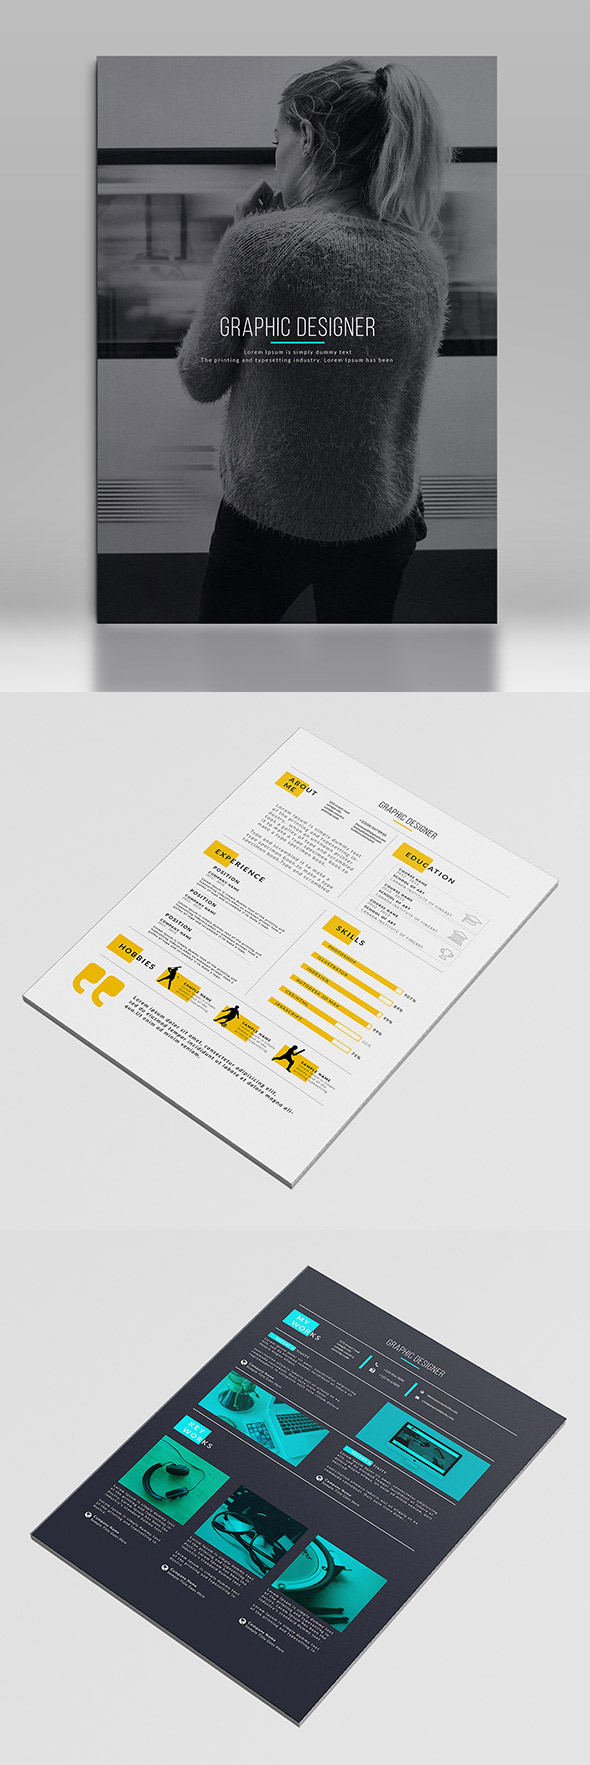 graphic design s resume resume for graphic designer best graphic design resume tips happytom co professional resume template and cover